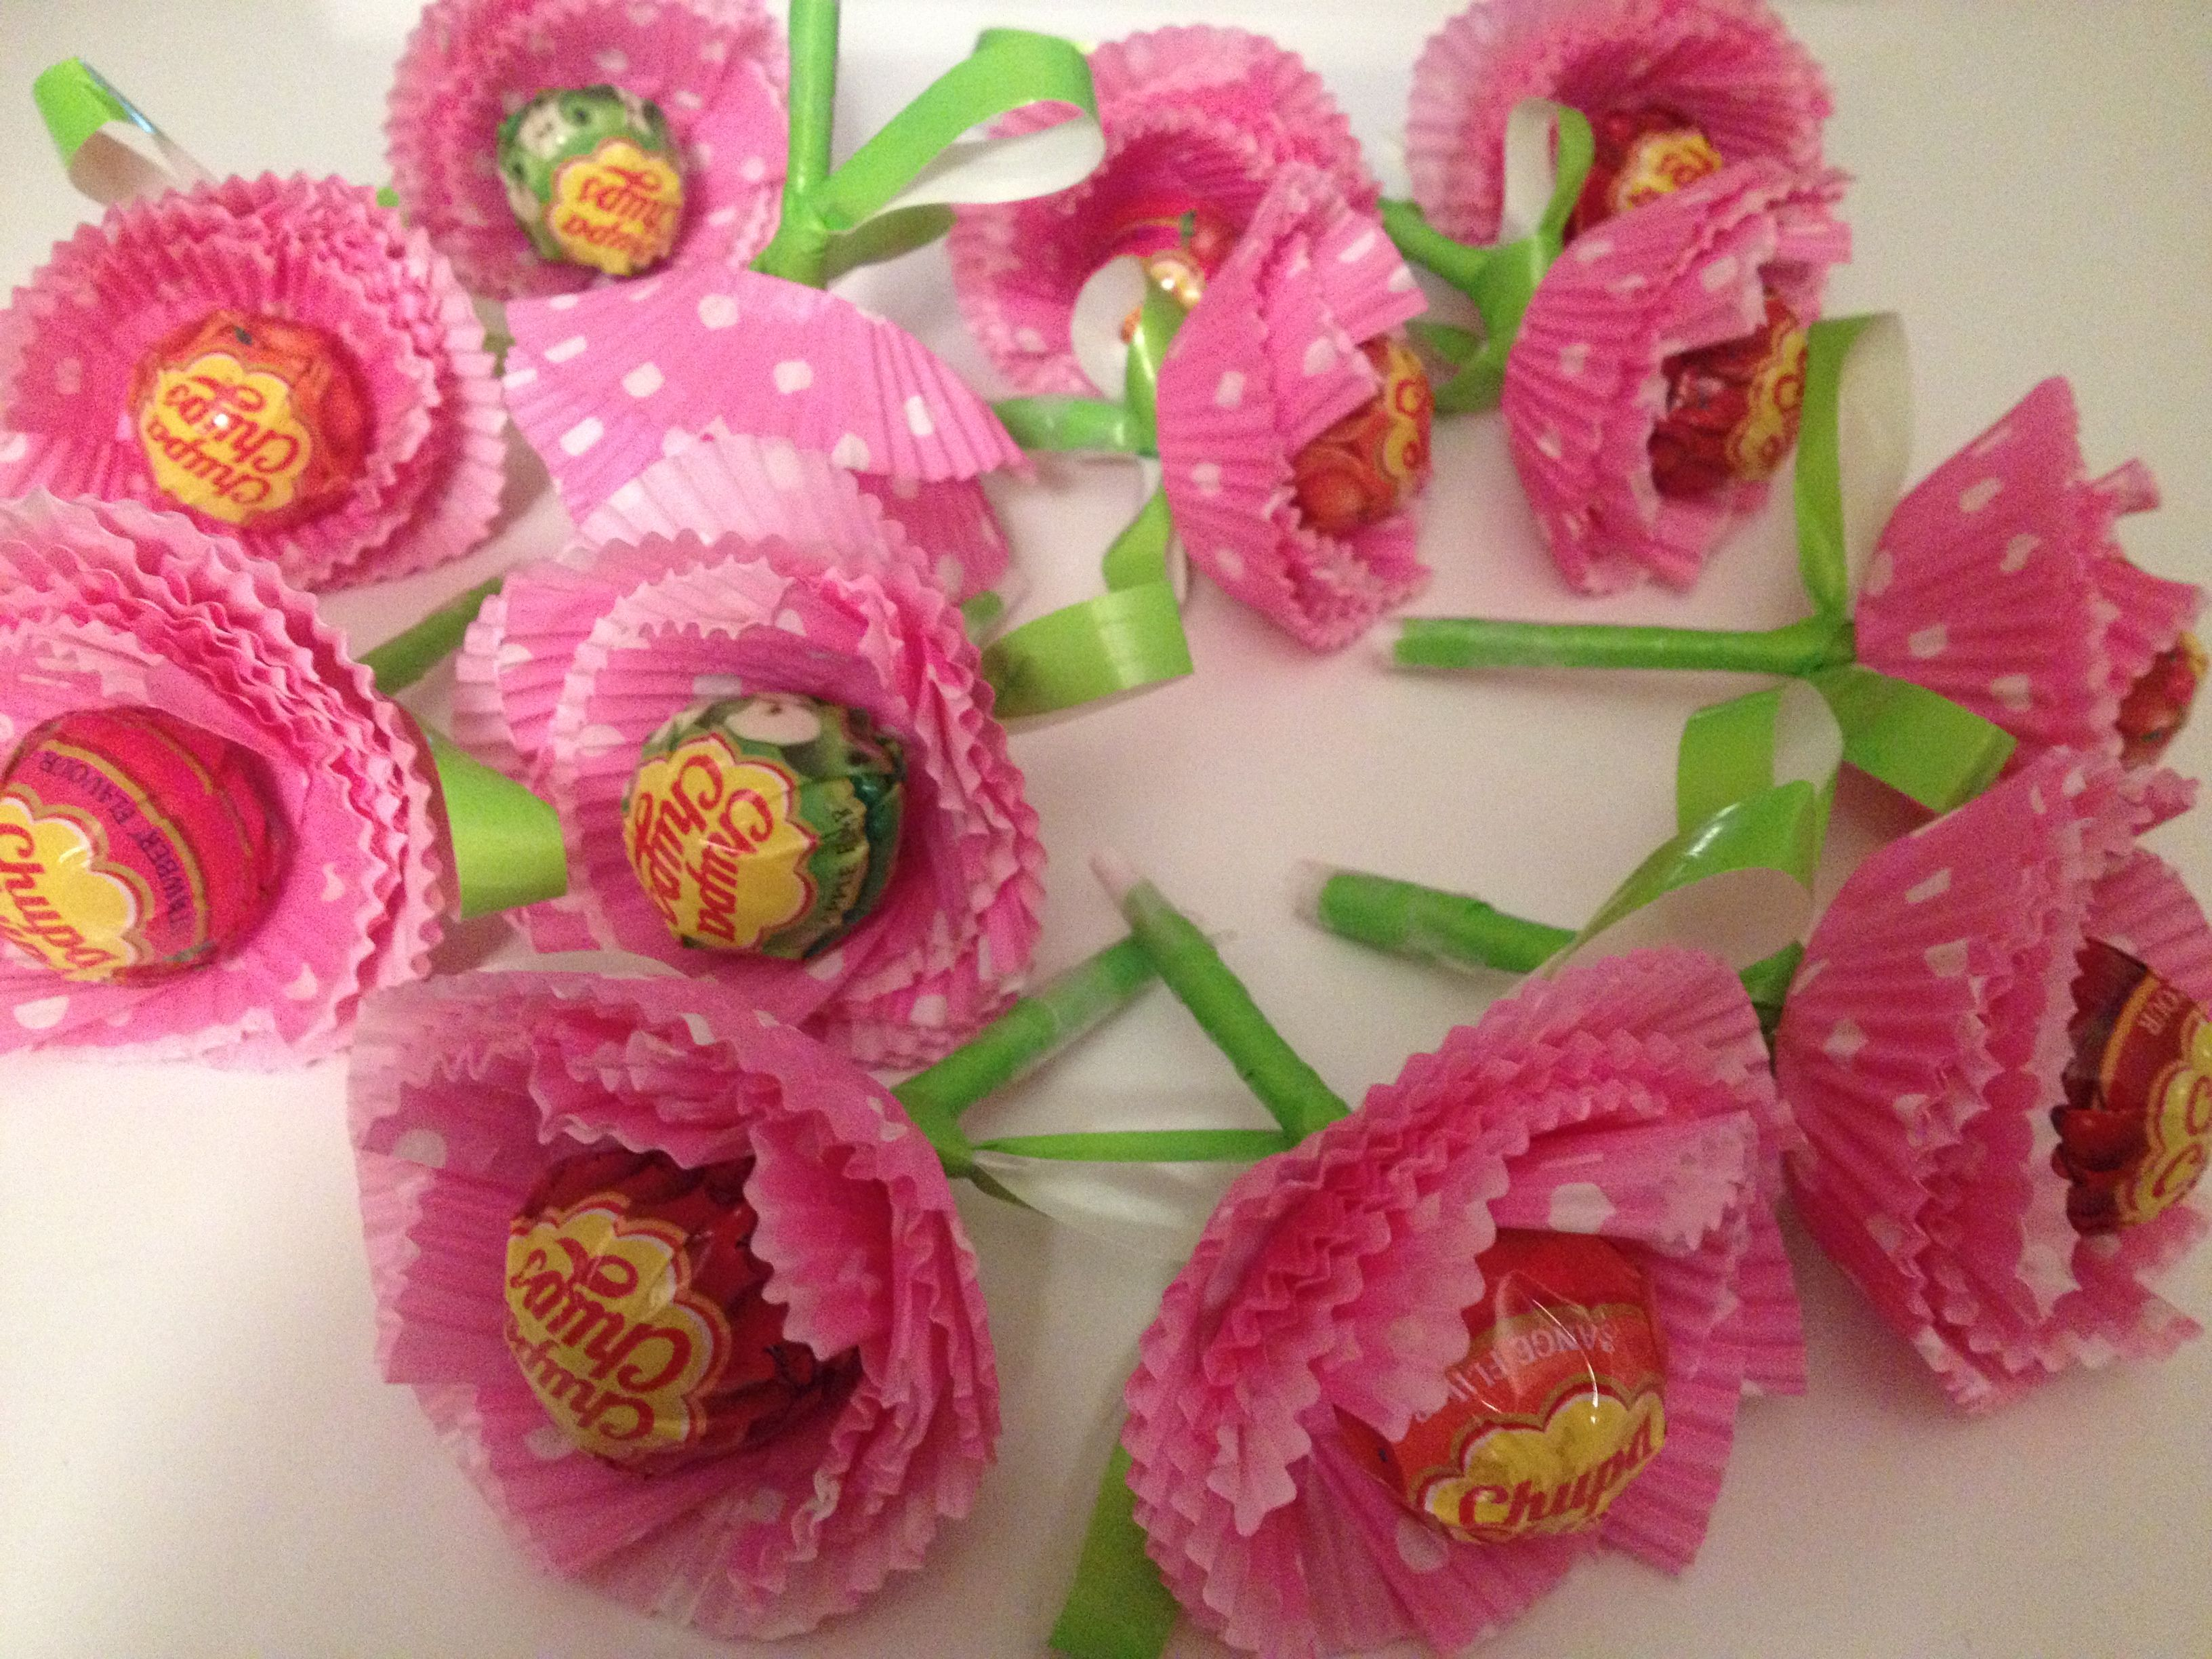 Chupa chup candy flowers diy with the following materials cupcake chupa chup candy flowers diy with the following materials cupcake cups green izmirmasajfo